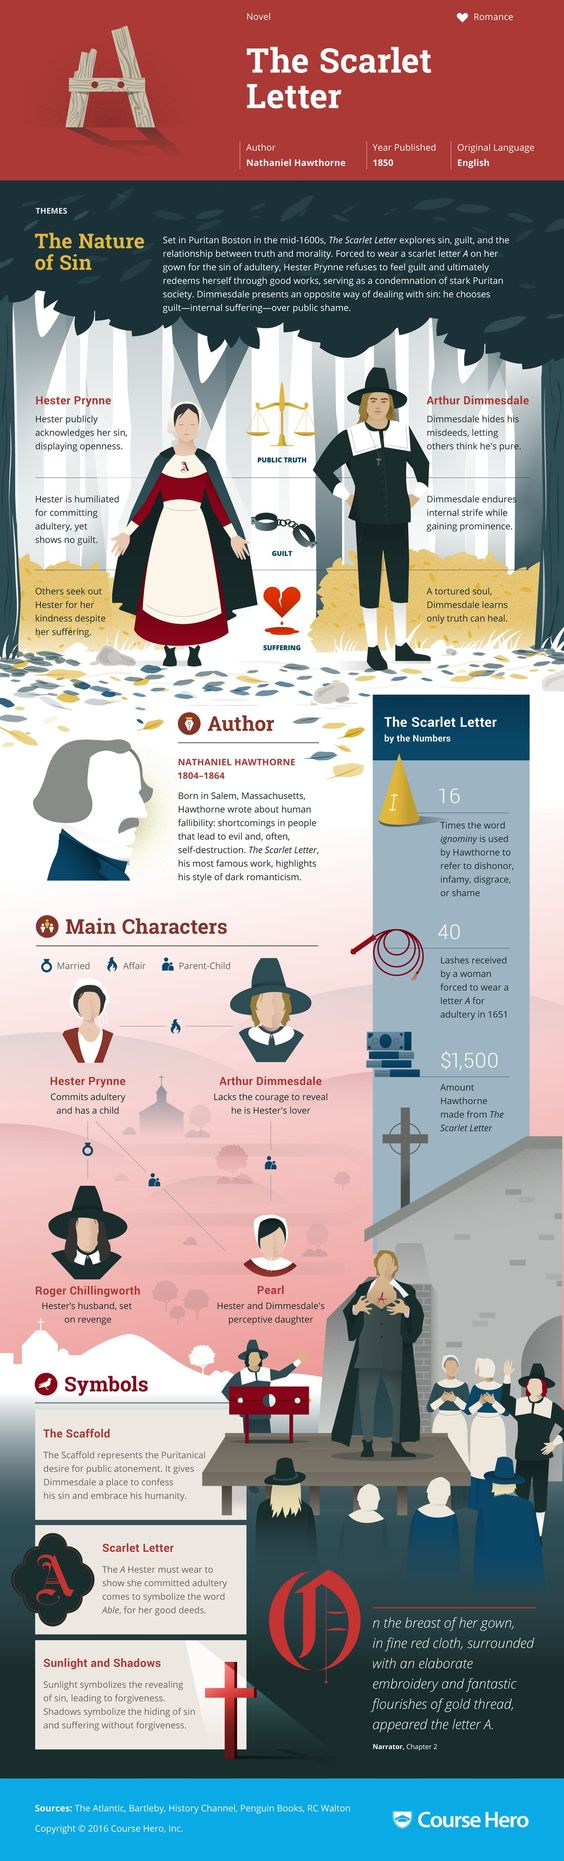 Check out this awesome 'The Scarlet Letter' infographic from Course Hero!: